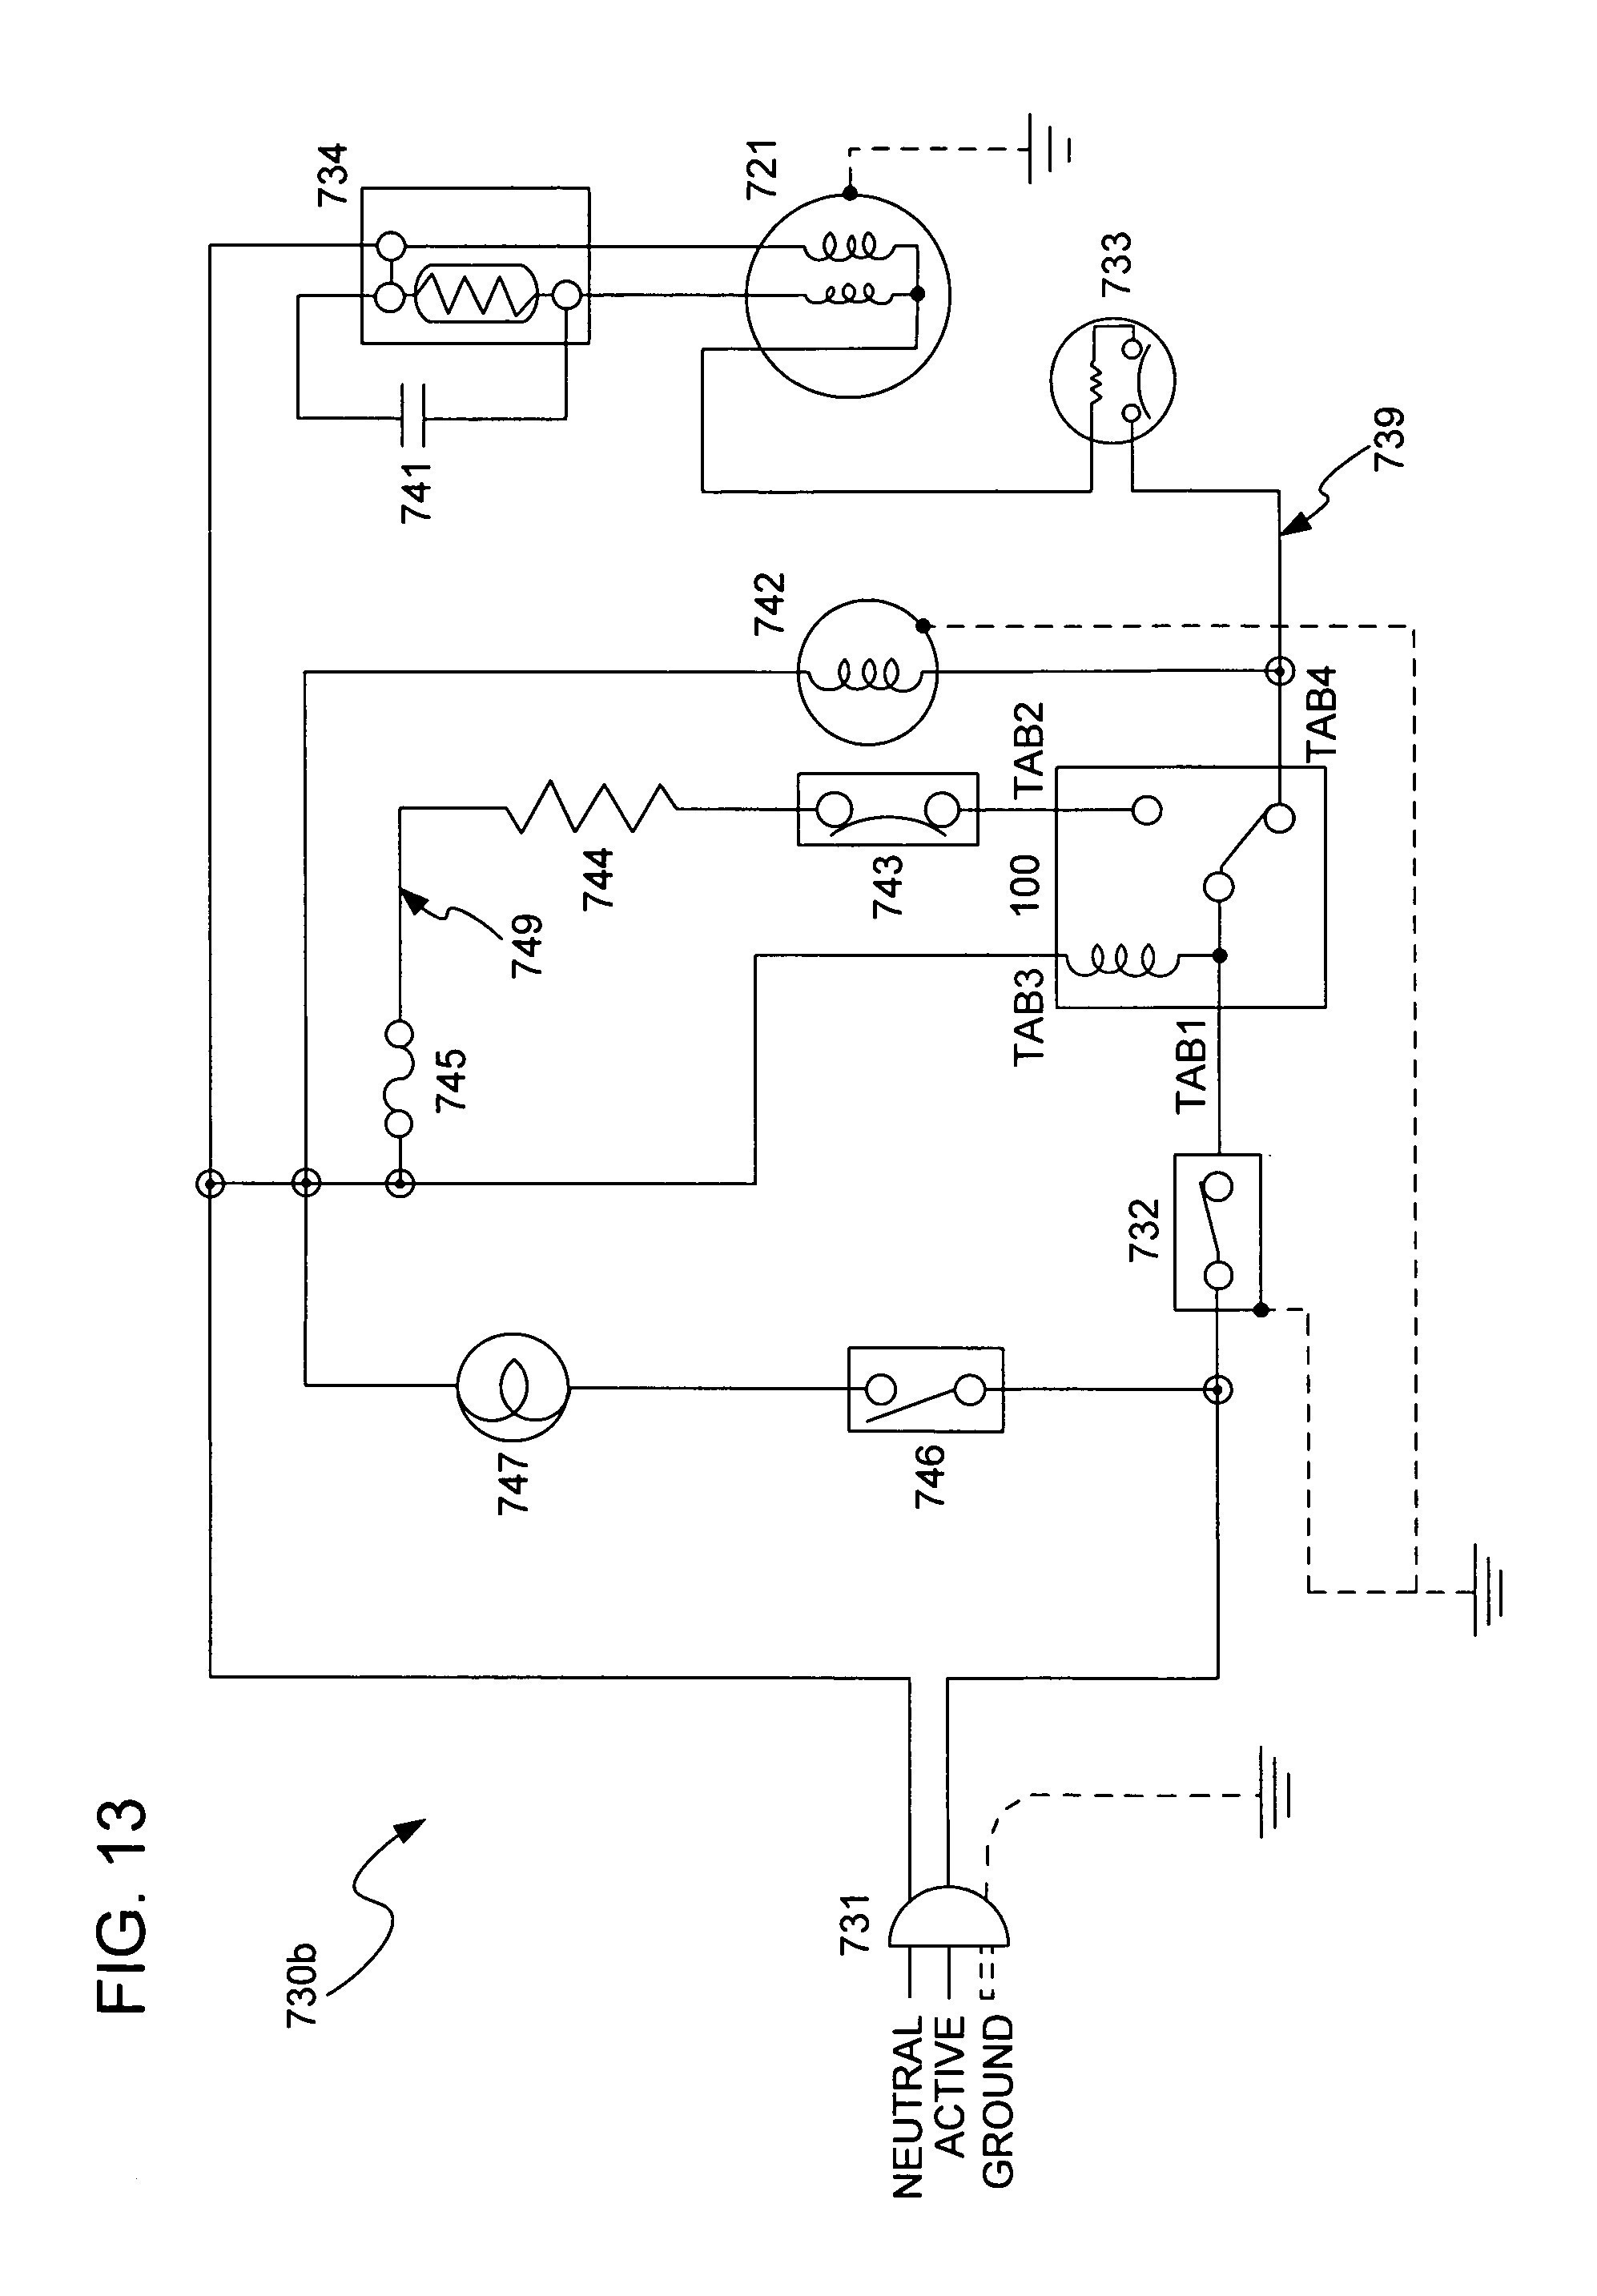 Ranco wiring diagram 240v refrigeration compressor wiring diagram wiring diagram for vt9 thermostat funky inncom thermostat wiring refrigeration compressor wiring diagram wiring diagram cheapraybanclubmaster Image collections